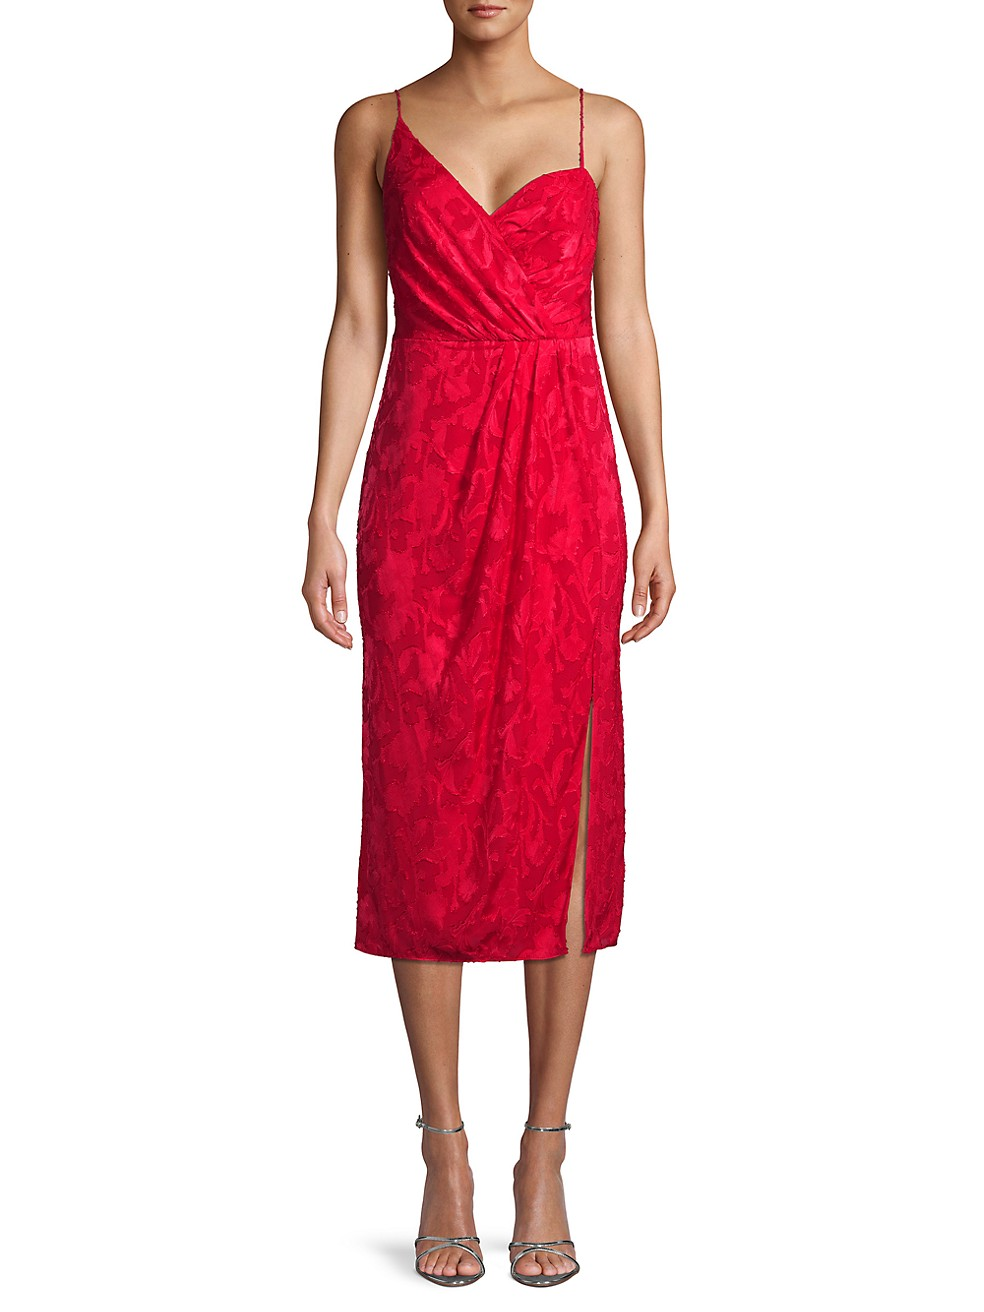 Clearance Sale red dress